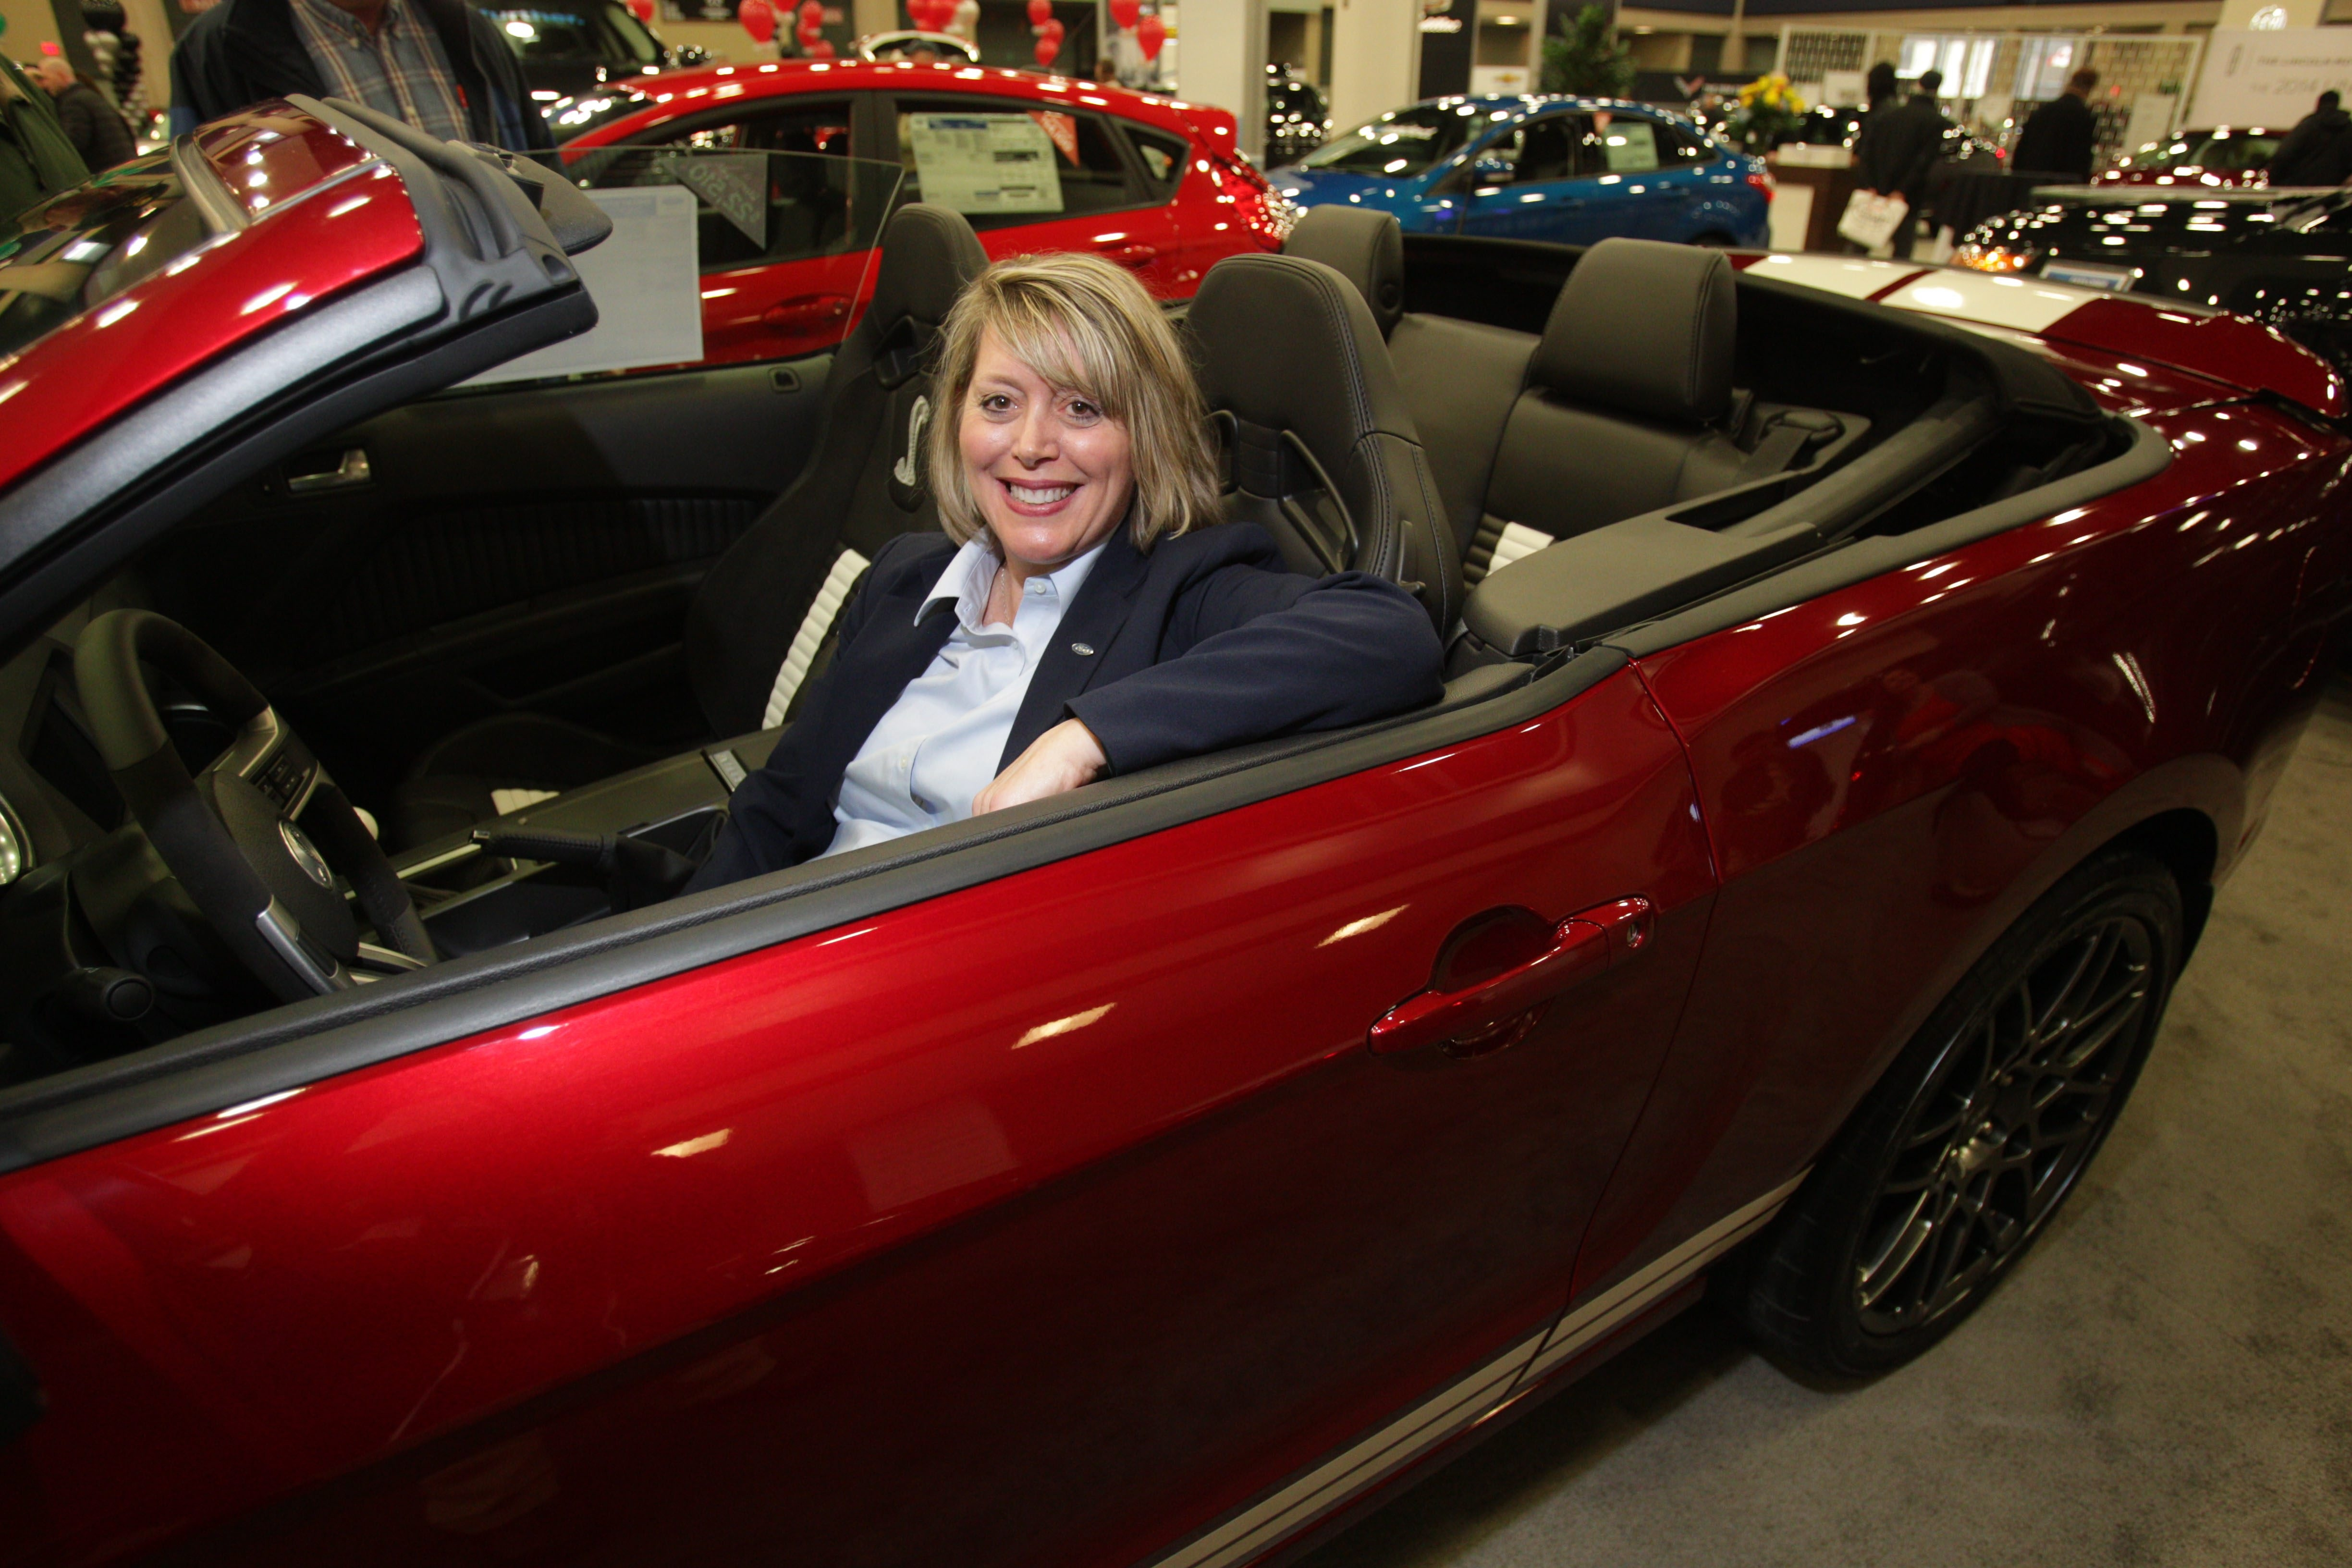 Liz Dwyer the regional manager for Ford, sitting in the Mustang Shelby Cobra at the 2014 Buffalo Auto Show, said there is plenty of business to support the region's Ford dealers.